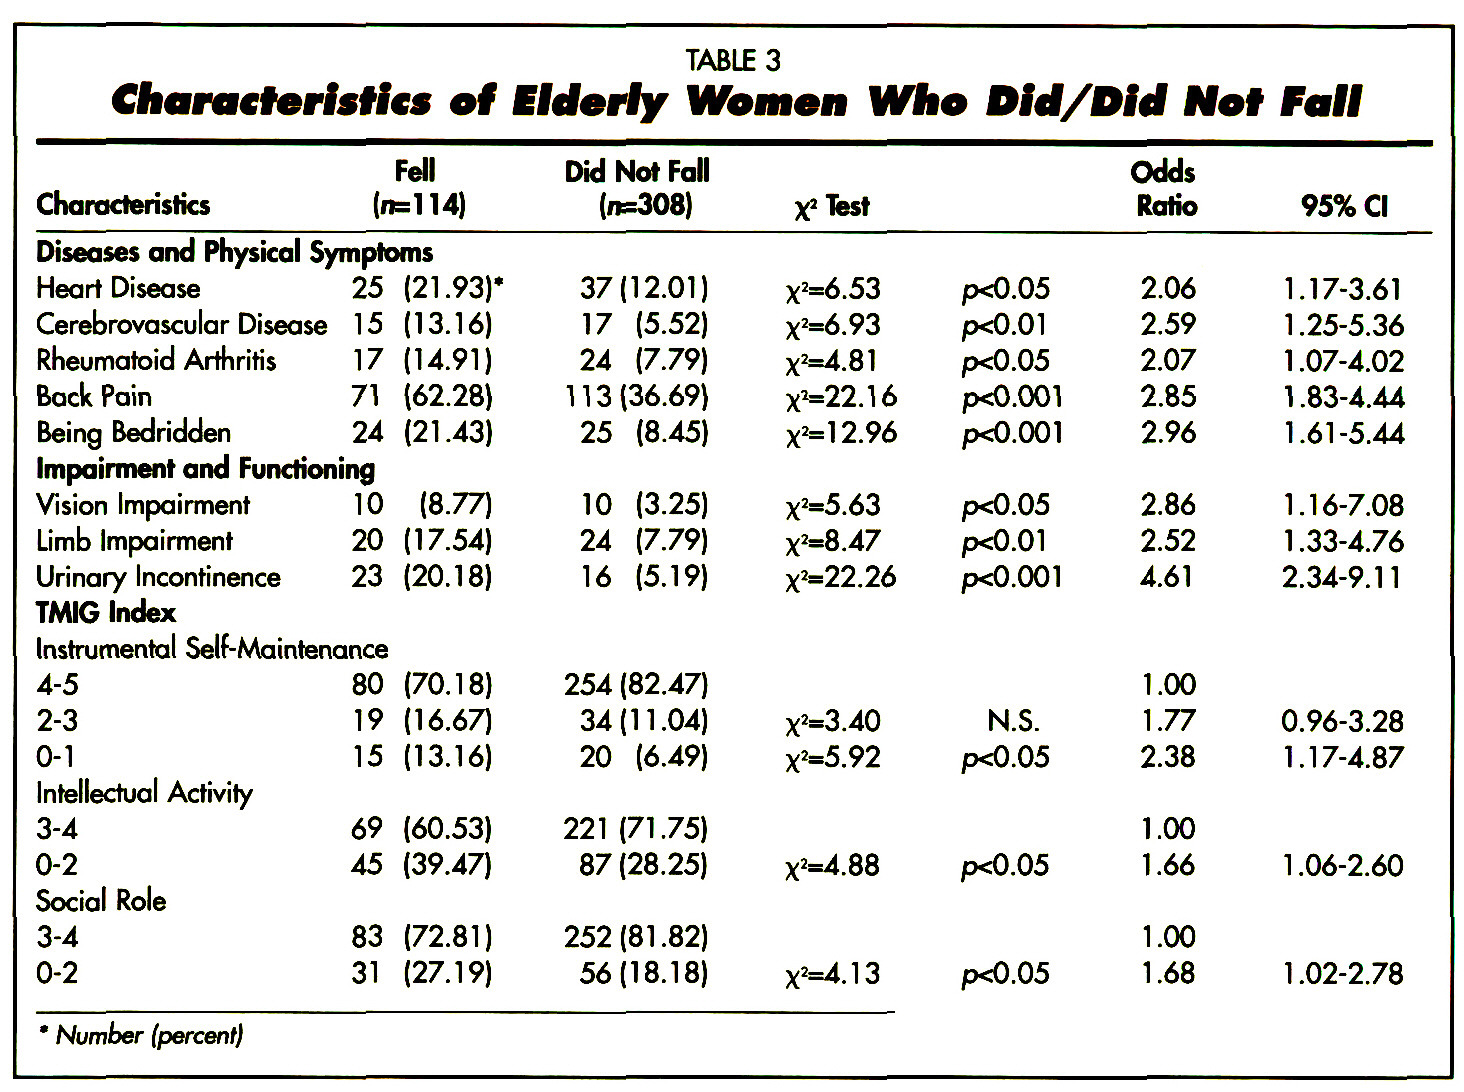 TABLE 3Characteristics of Elderly Women Who Did/Did Not Fall